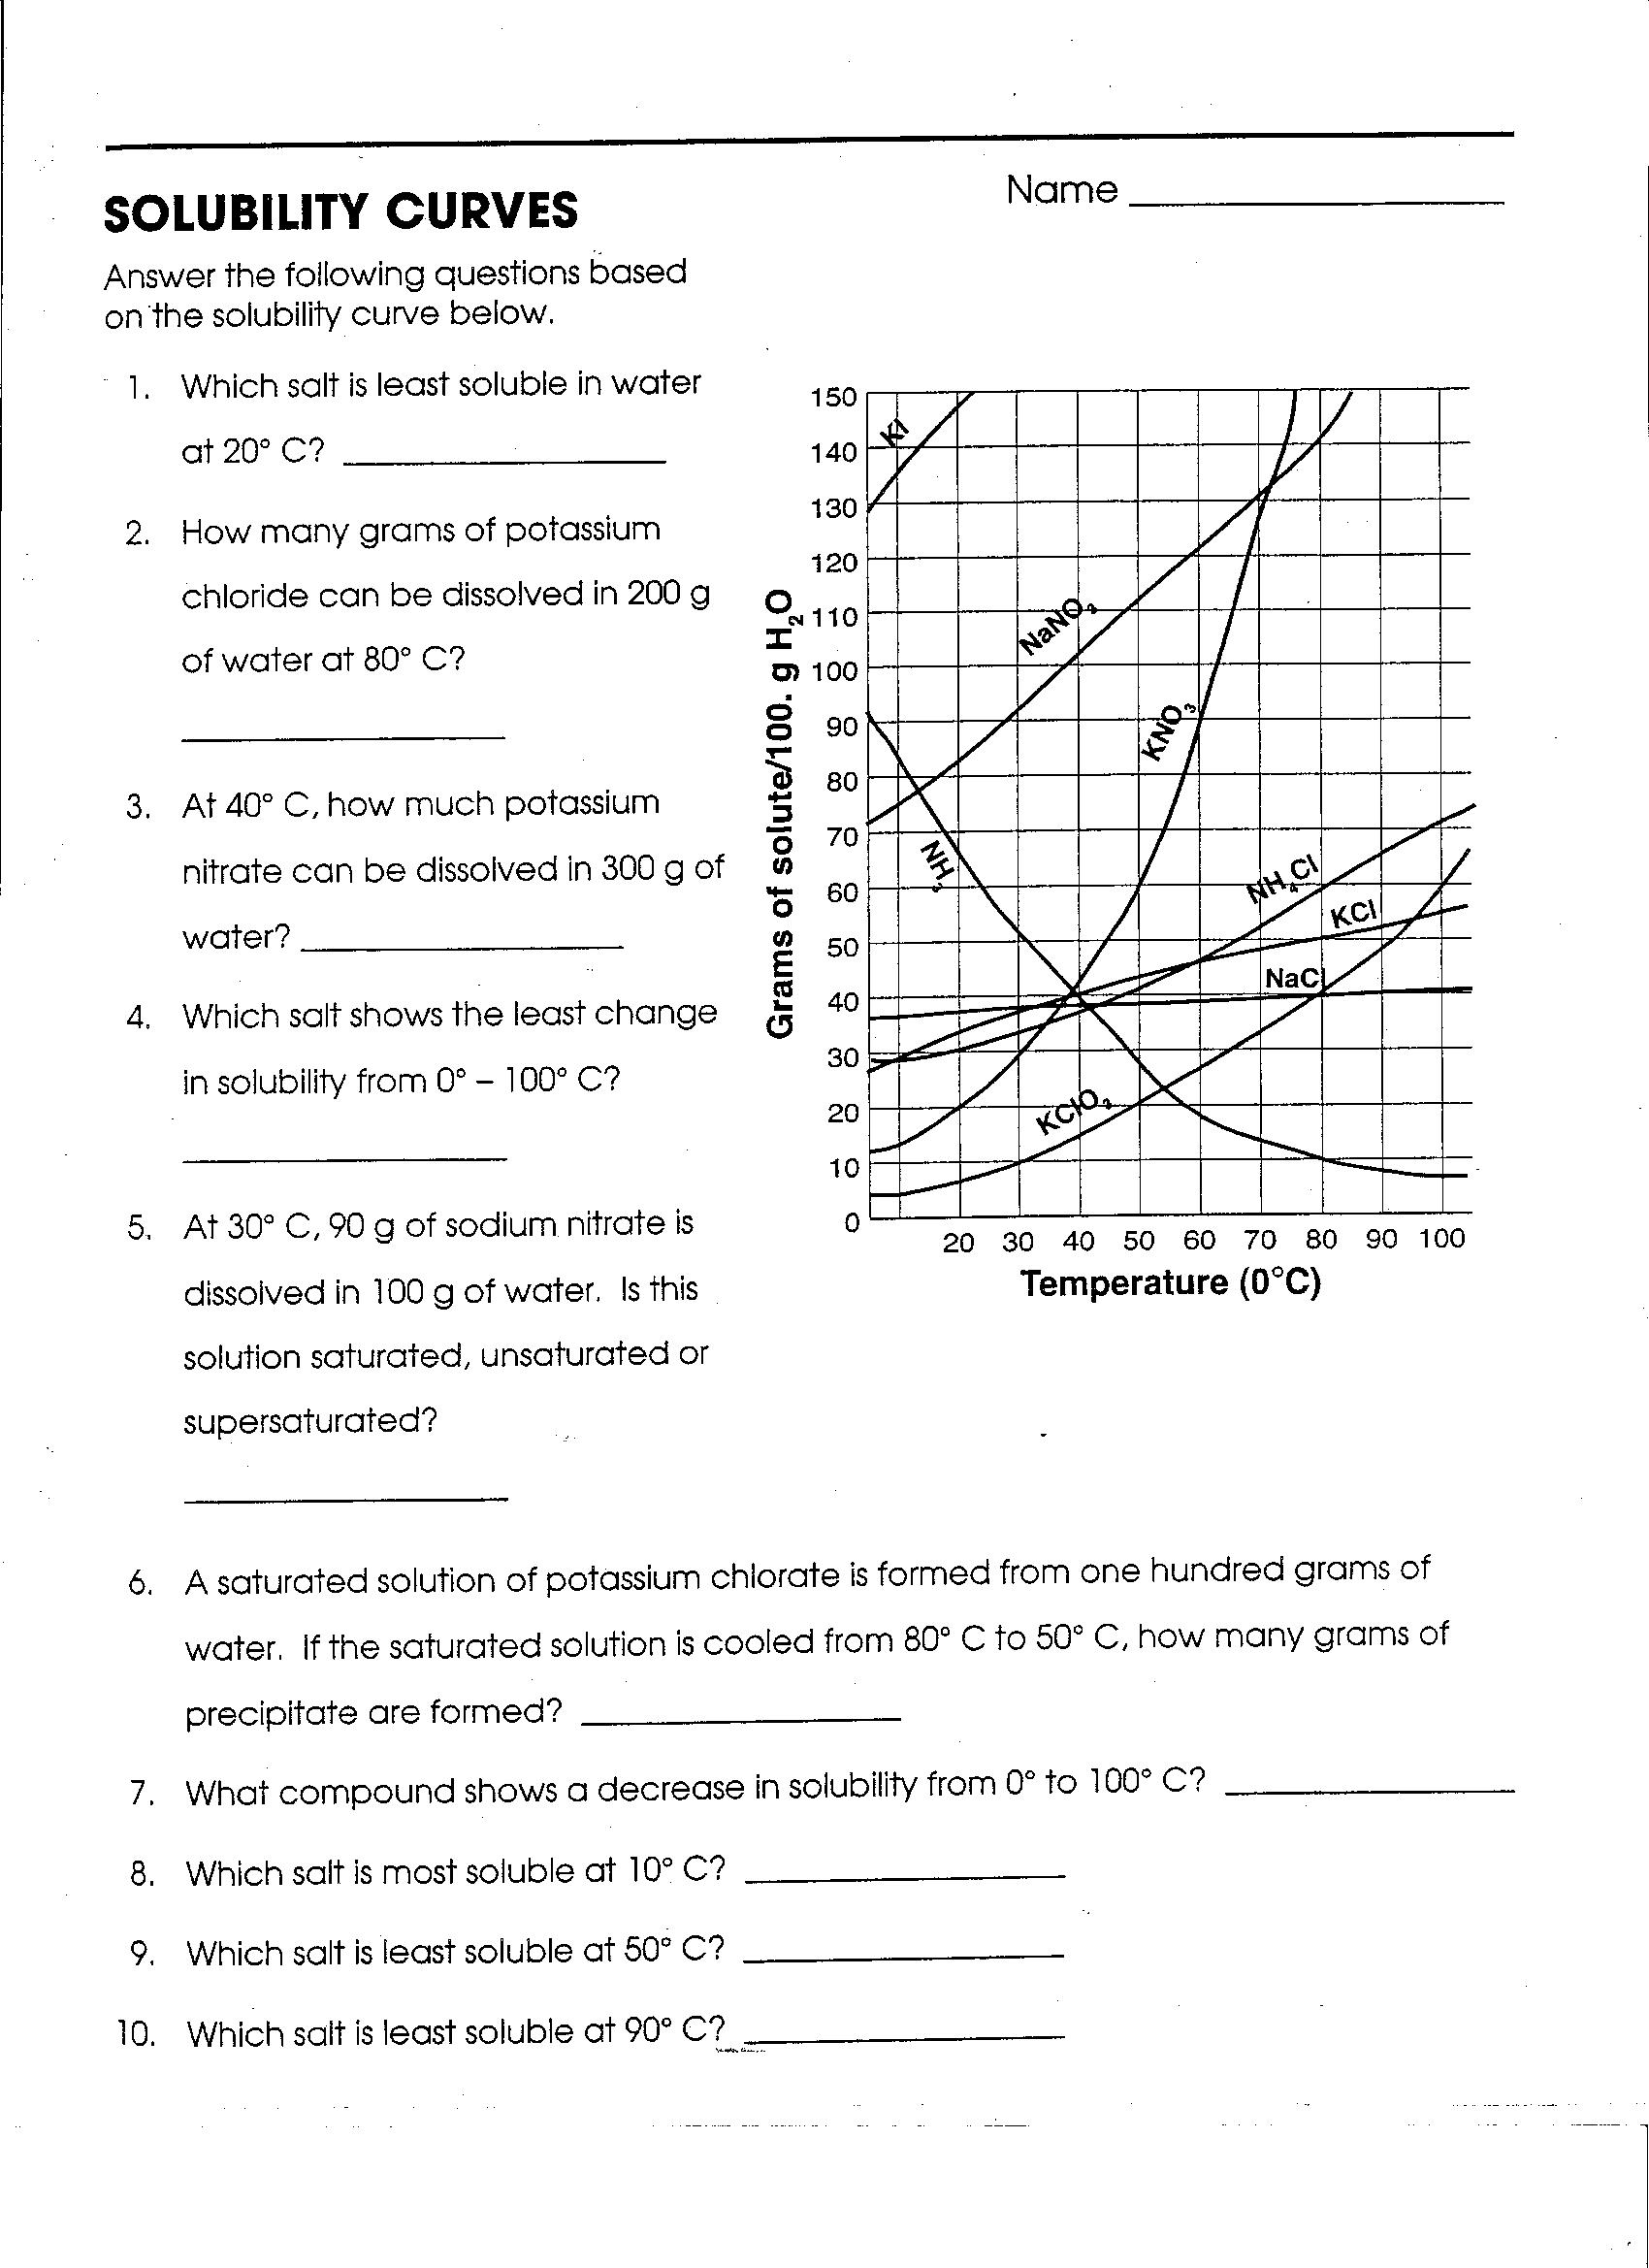 nicholls solubility graph worksheet answers.Solubility Graph Worksheet ...